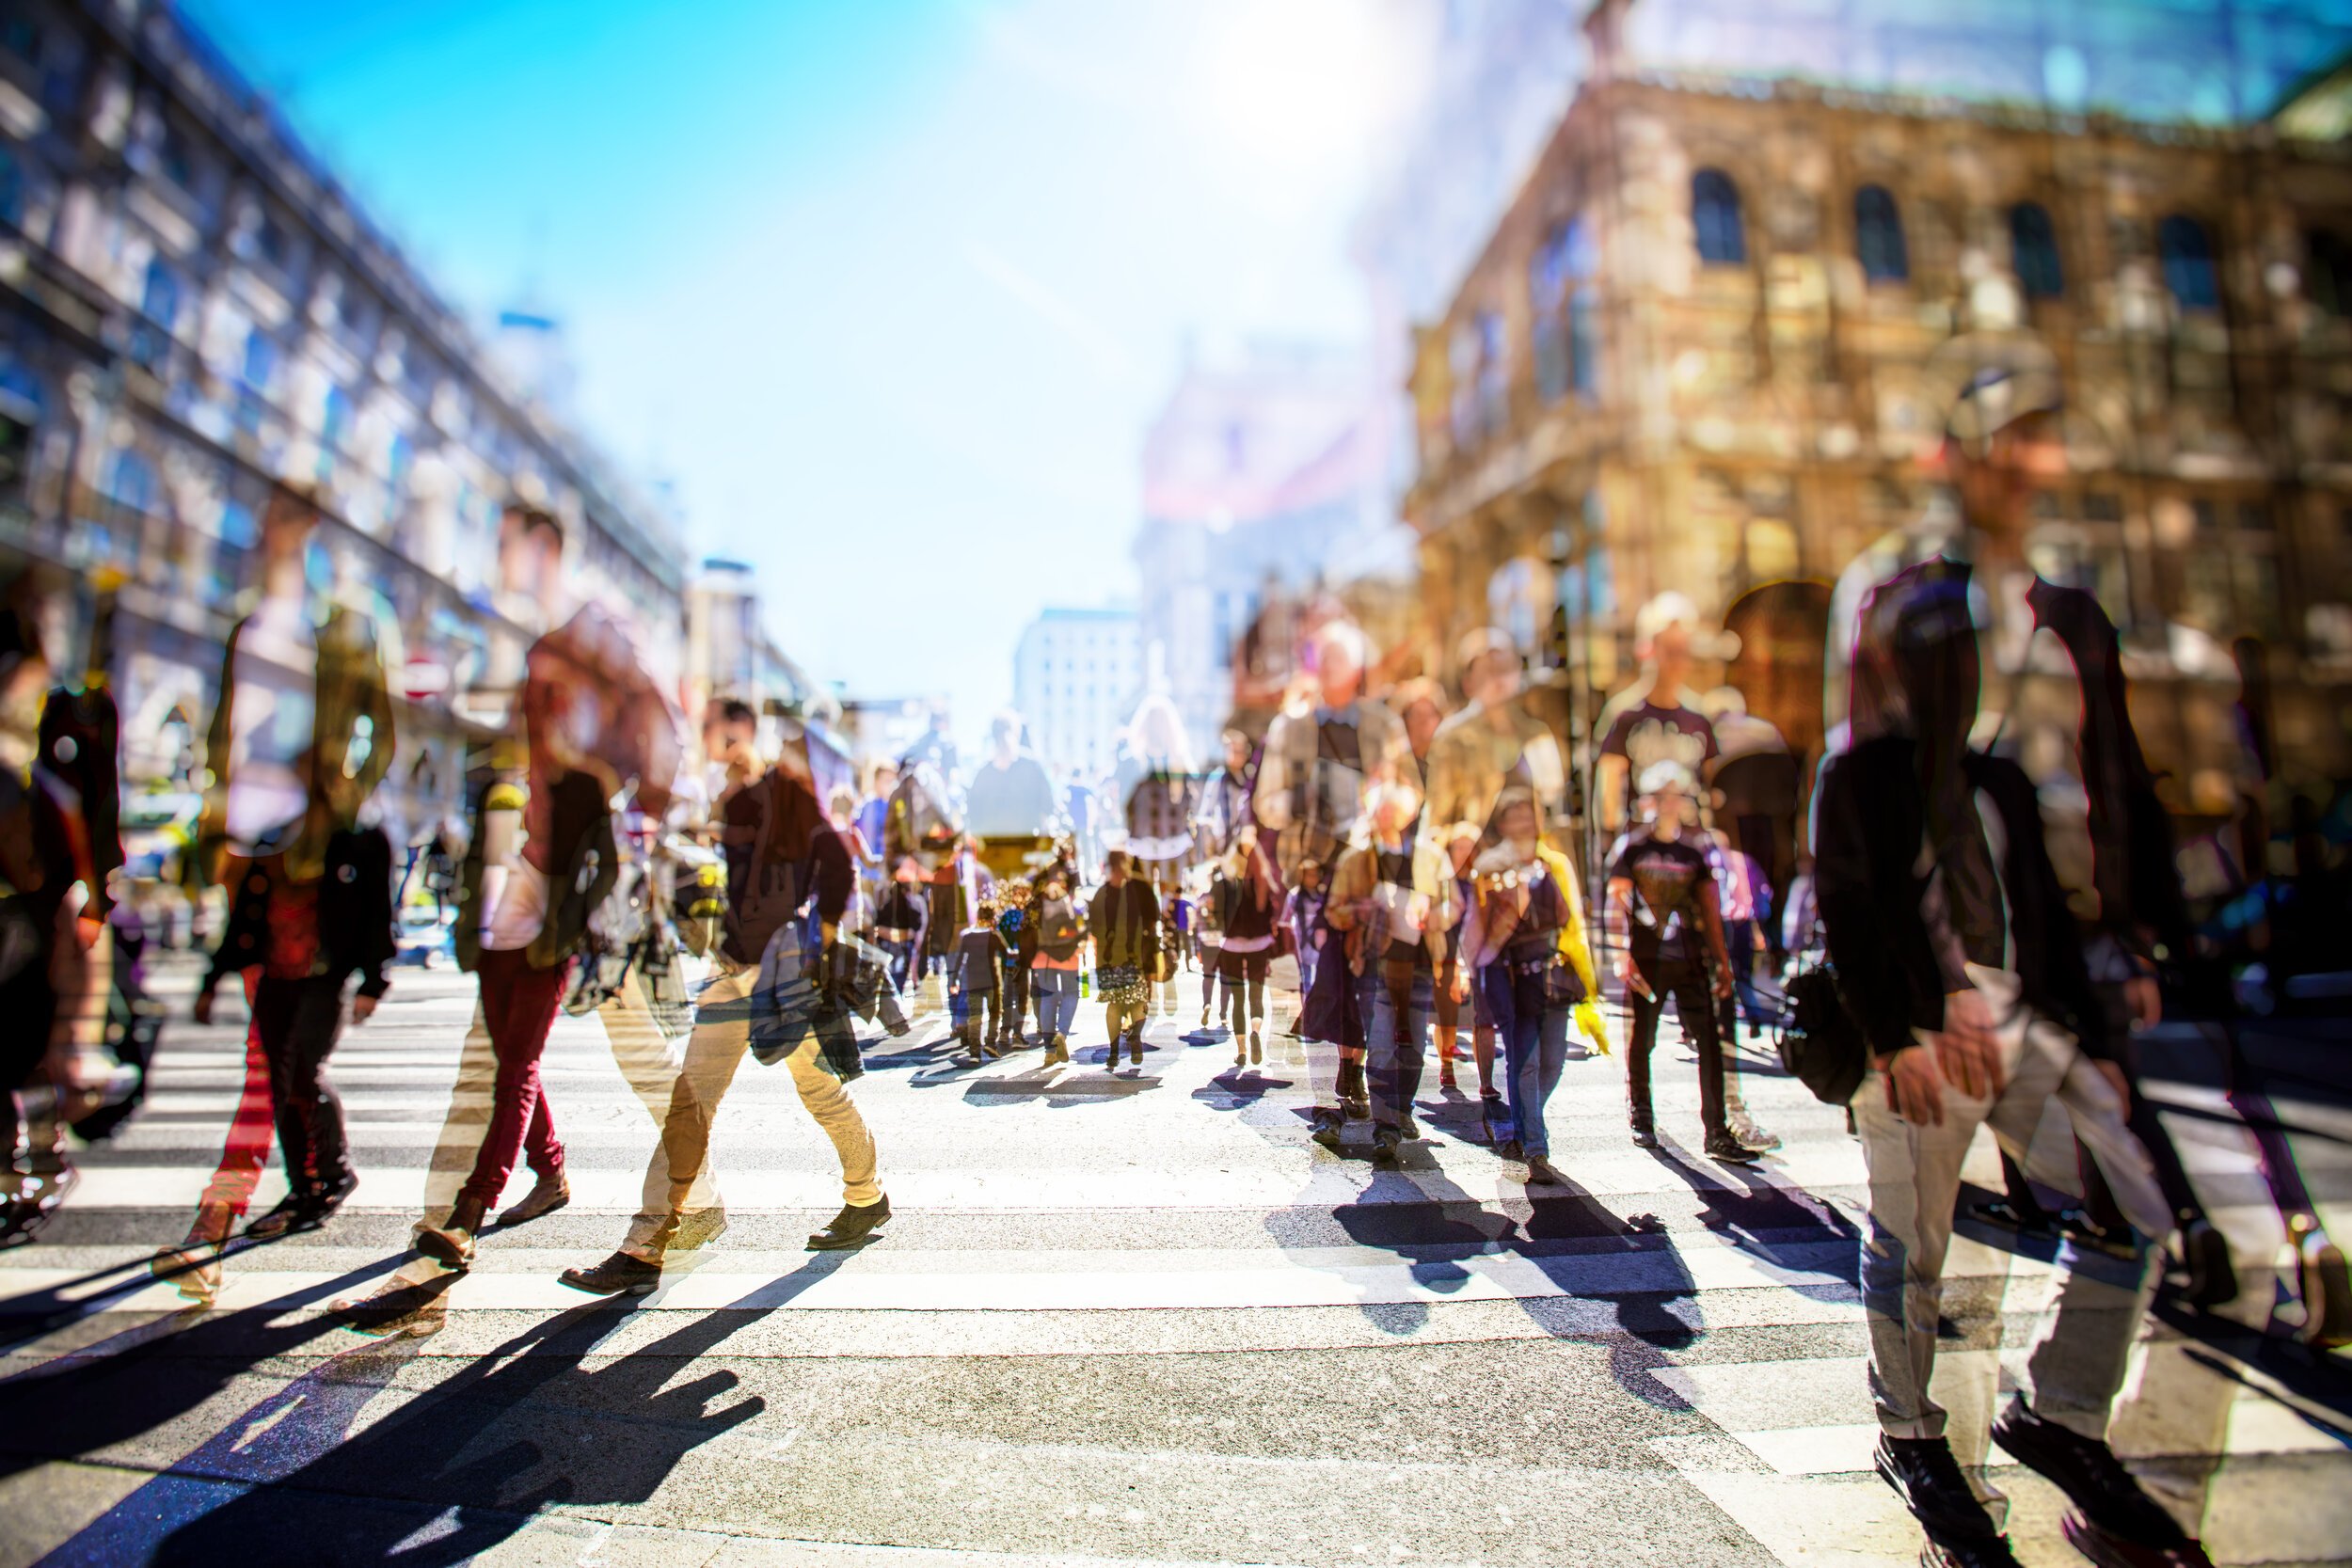 blurred image of shoppers moving in different directions at intersection